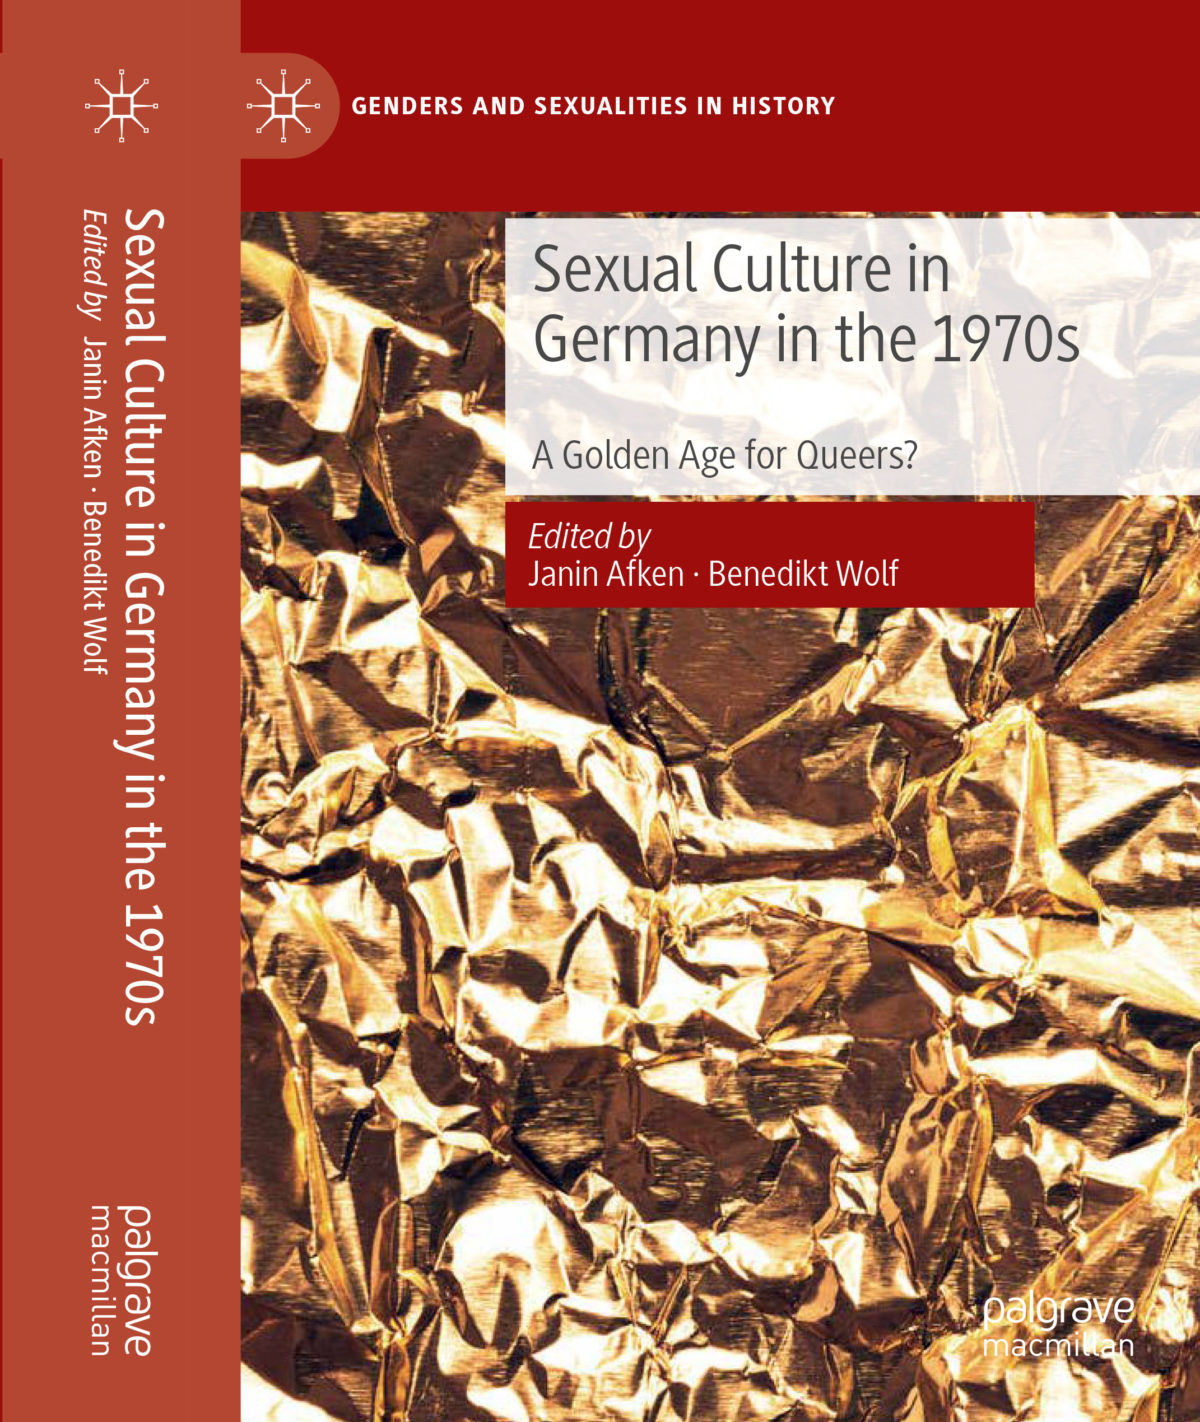 Sexual Culture in Germany in the 1970s: A Golden Age for Queers?